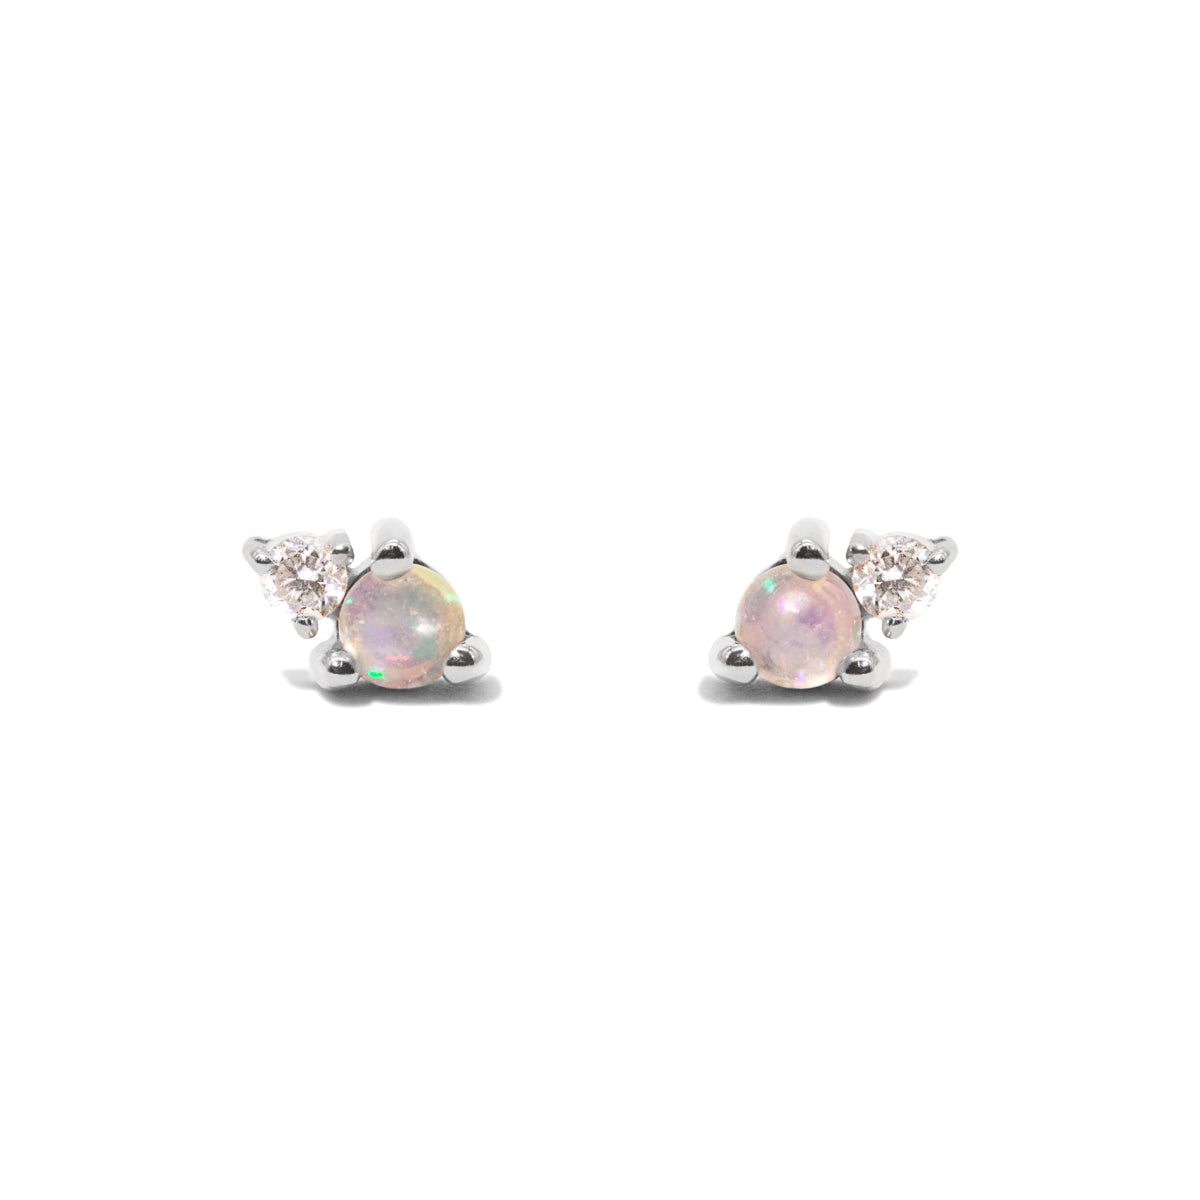 The Silver Opal & Diamond Duo Stud Earrings